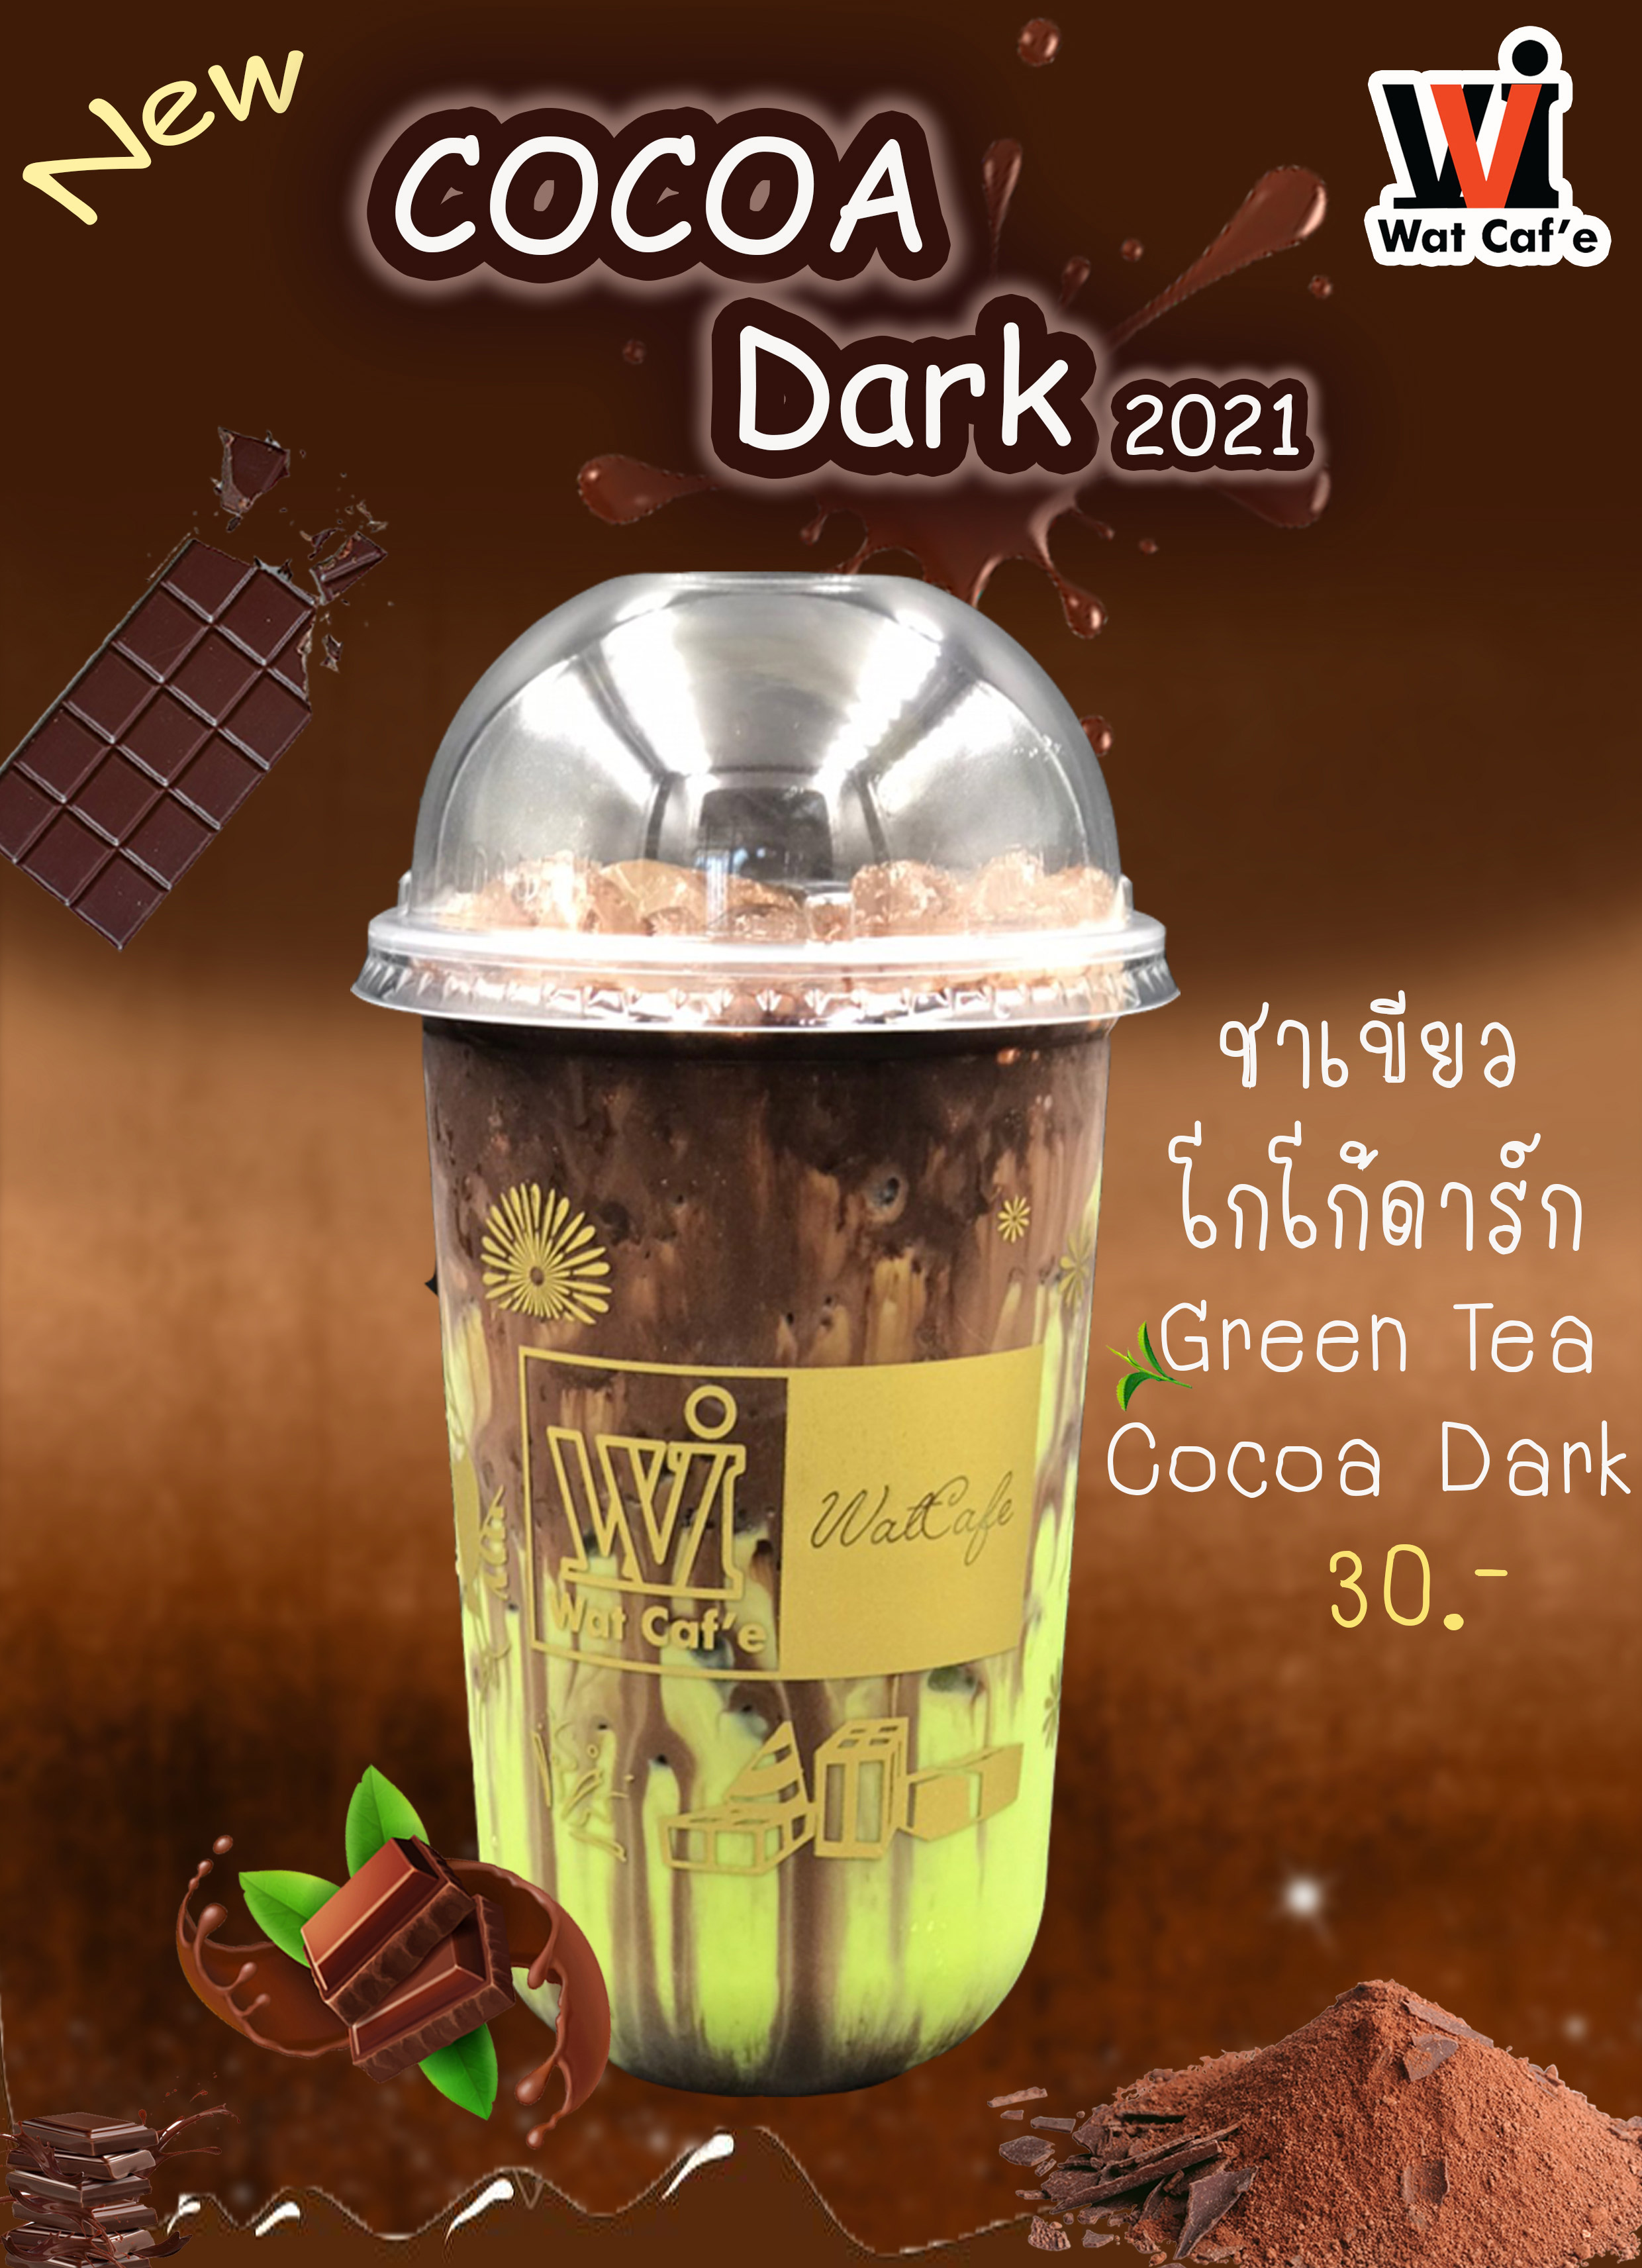 Green Tea Cocoa Dark